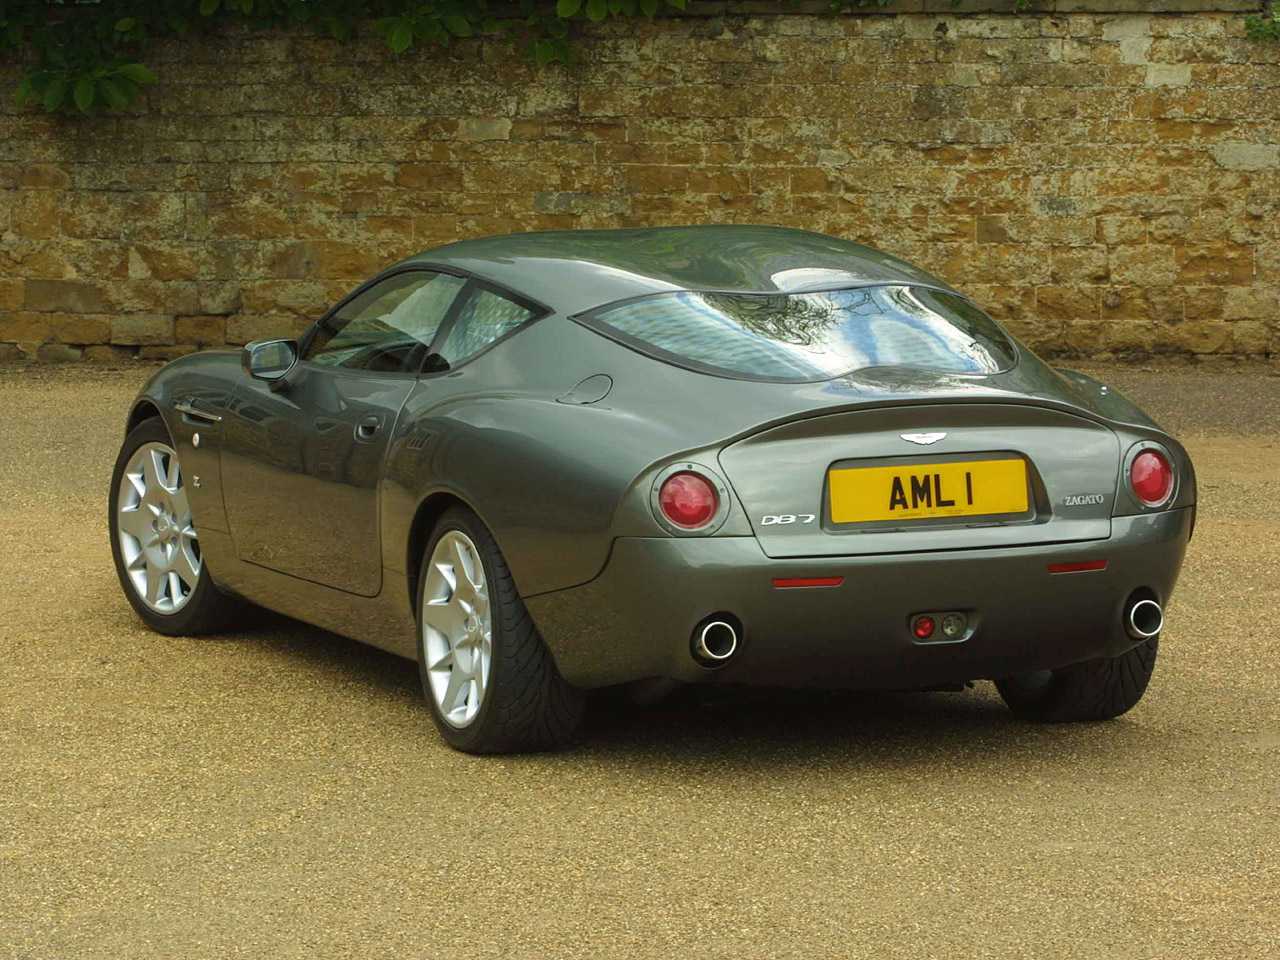 aston martin db7 zagato 2014 wallpaper #7